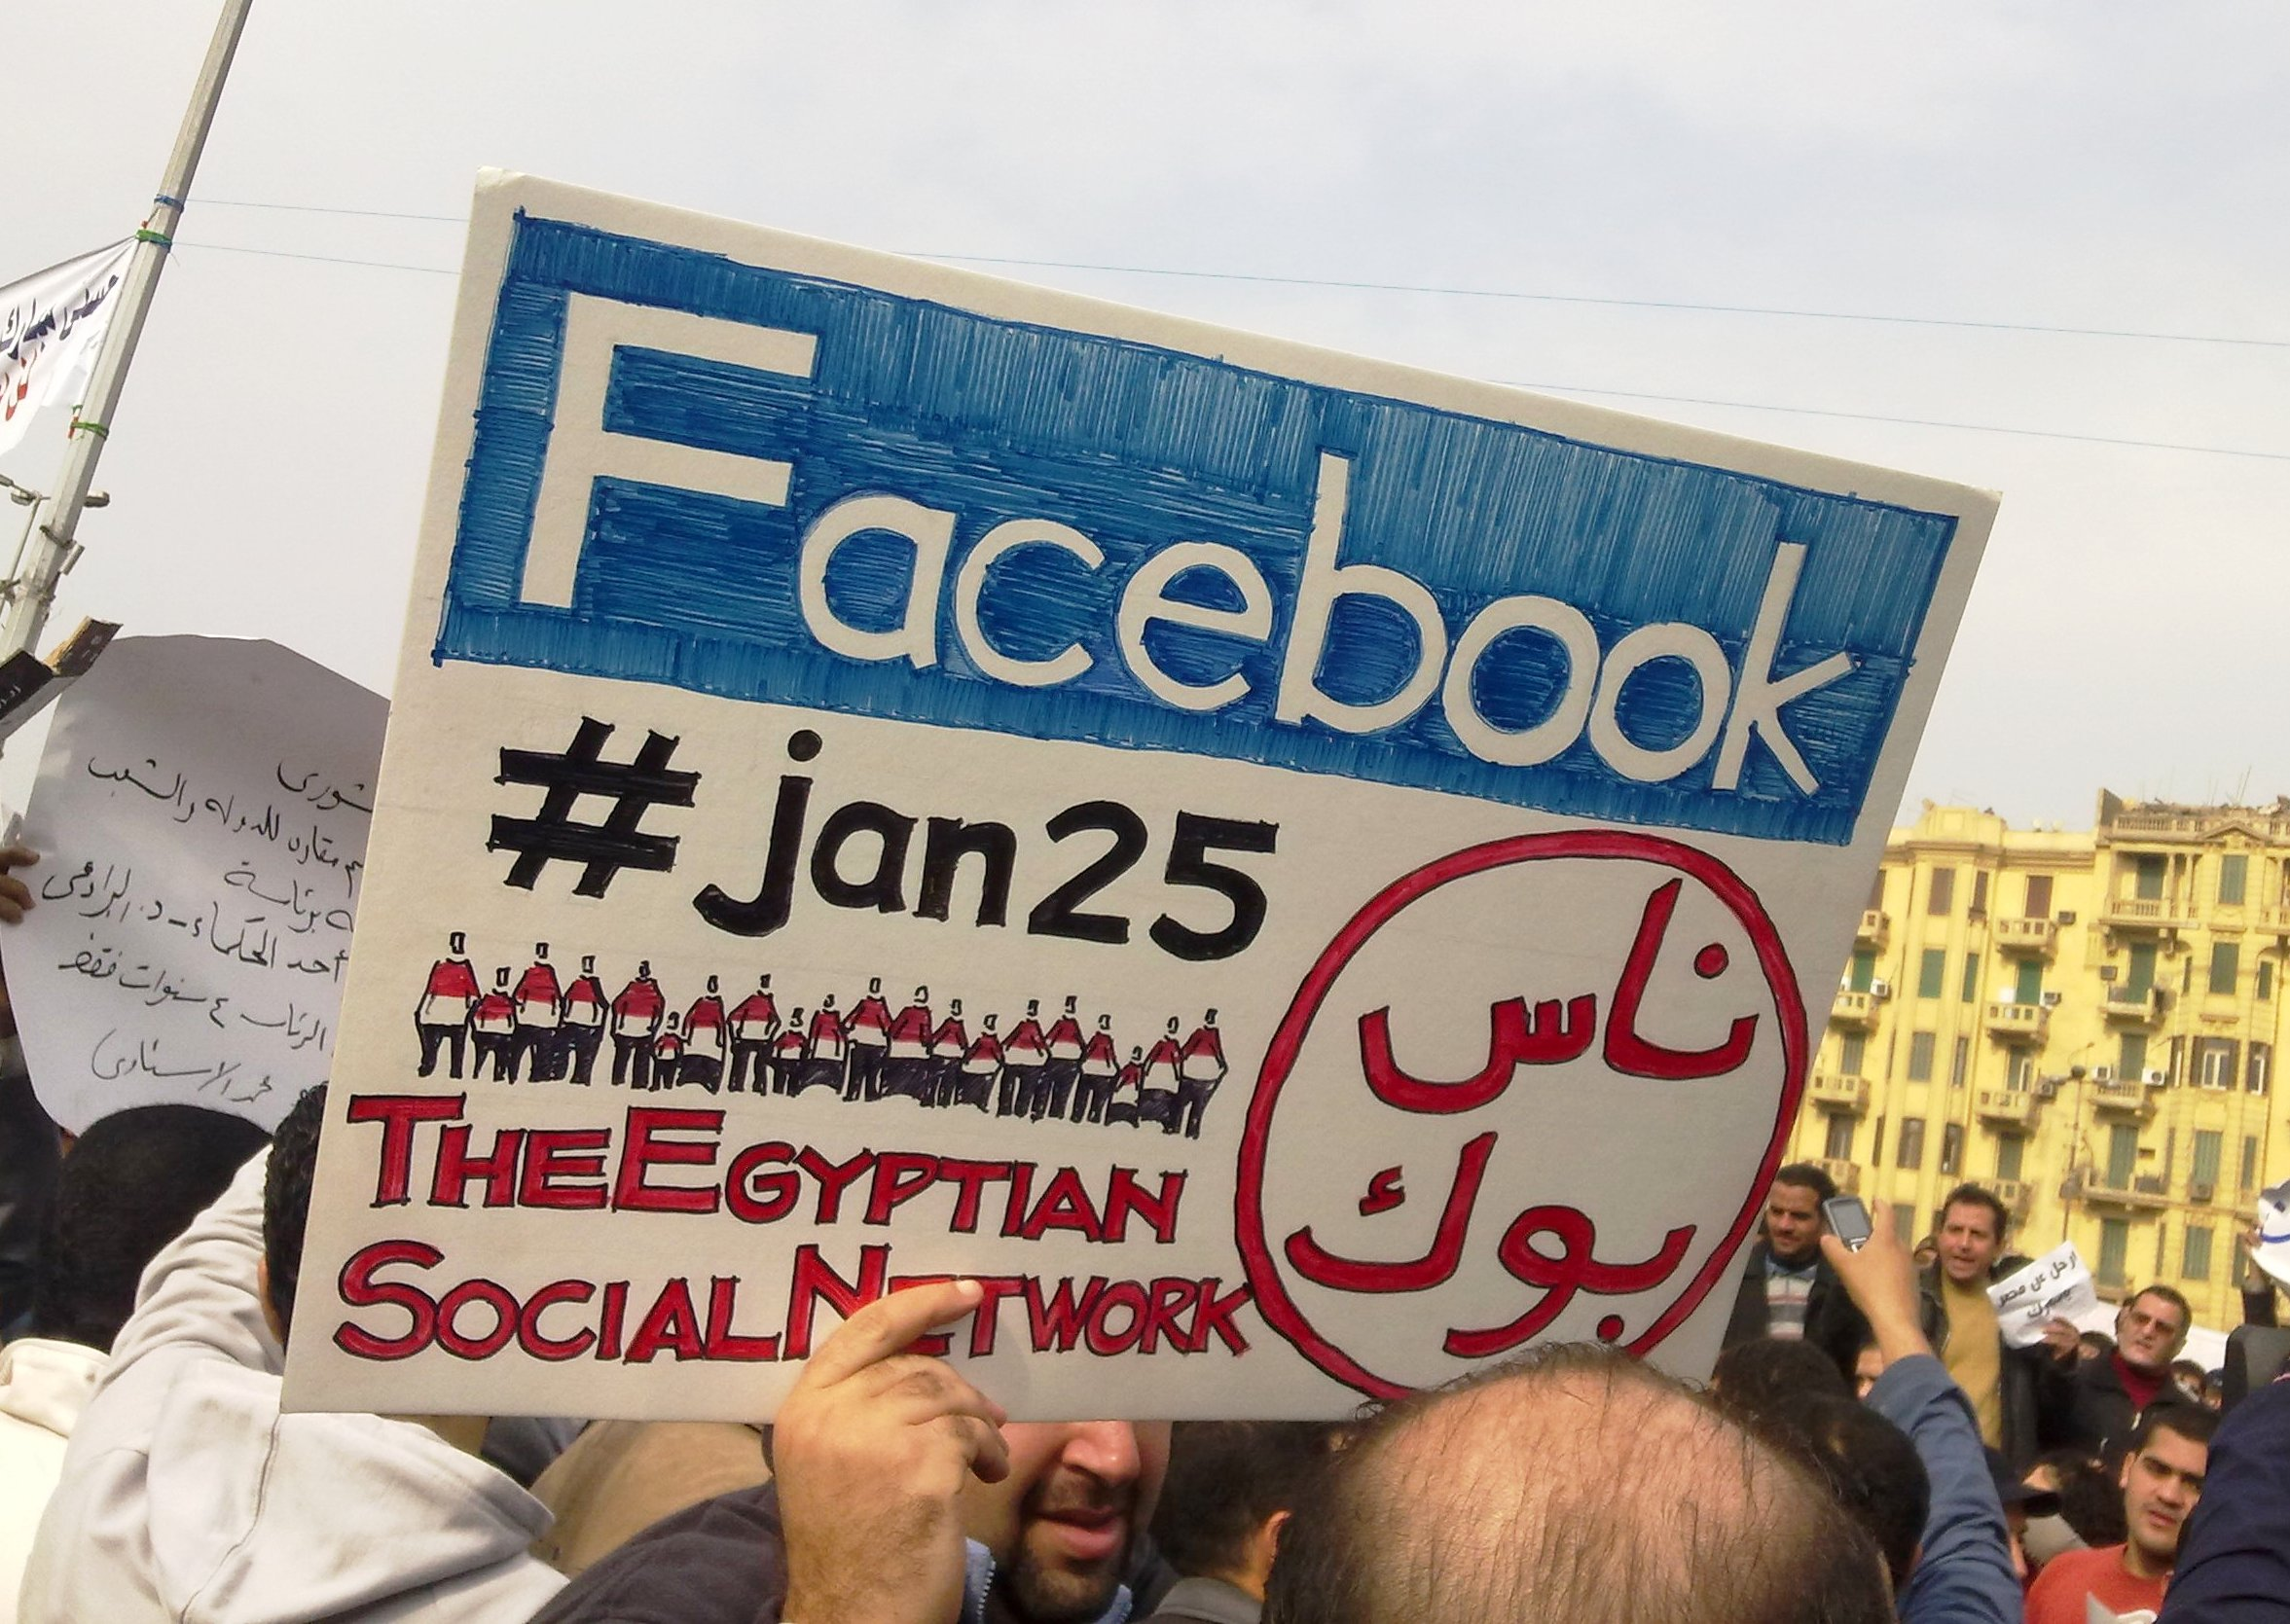 "manduringthe2011gyptianprotestscarryingacardsaying""acebook,jan25,hegyptianocialetwork"""